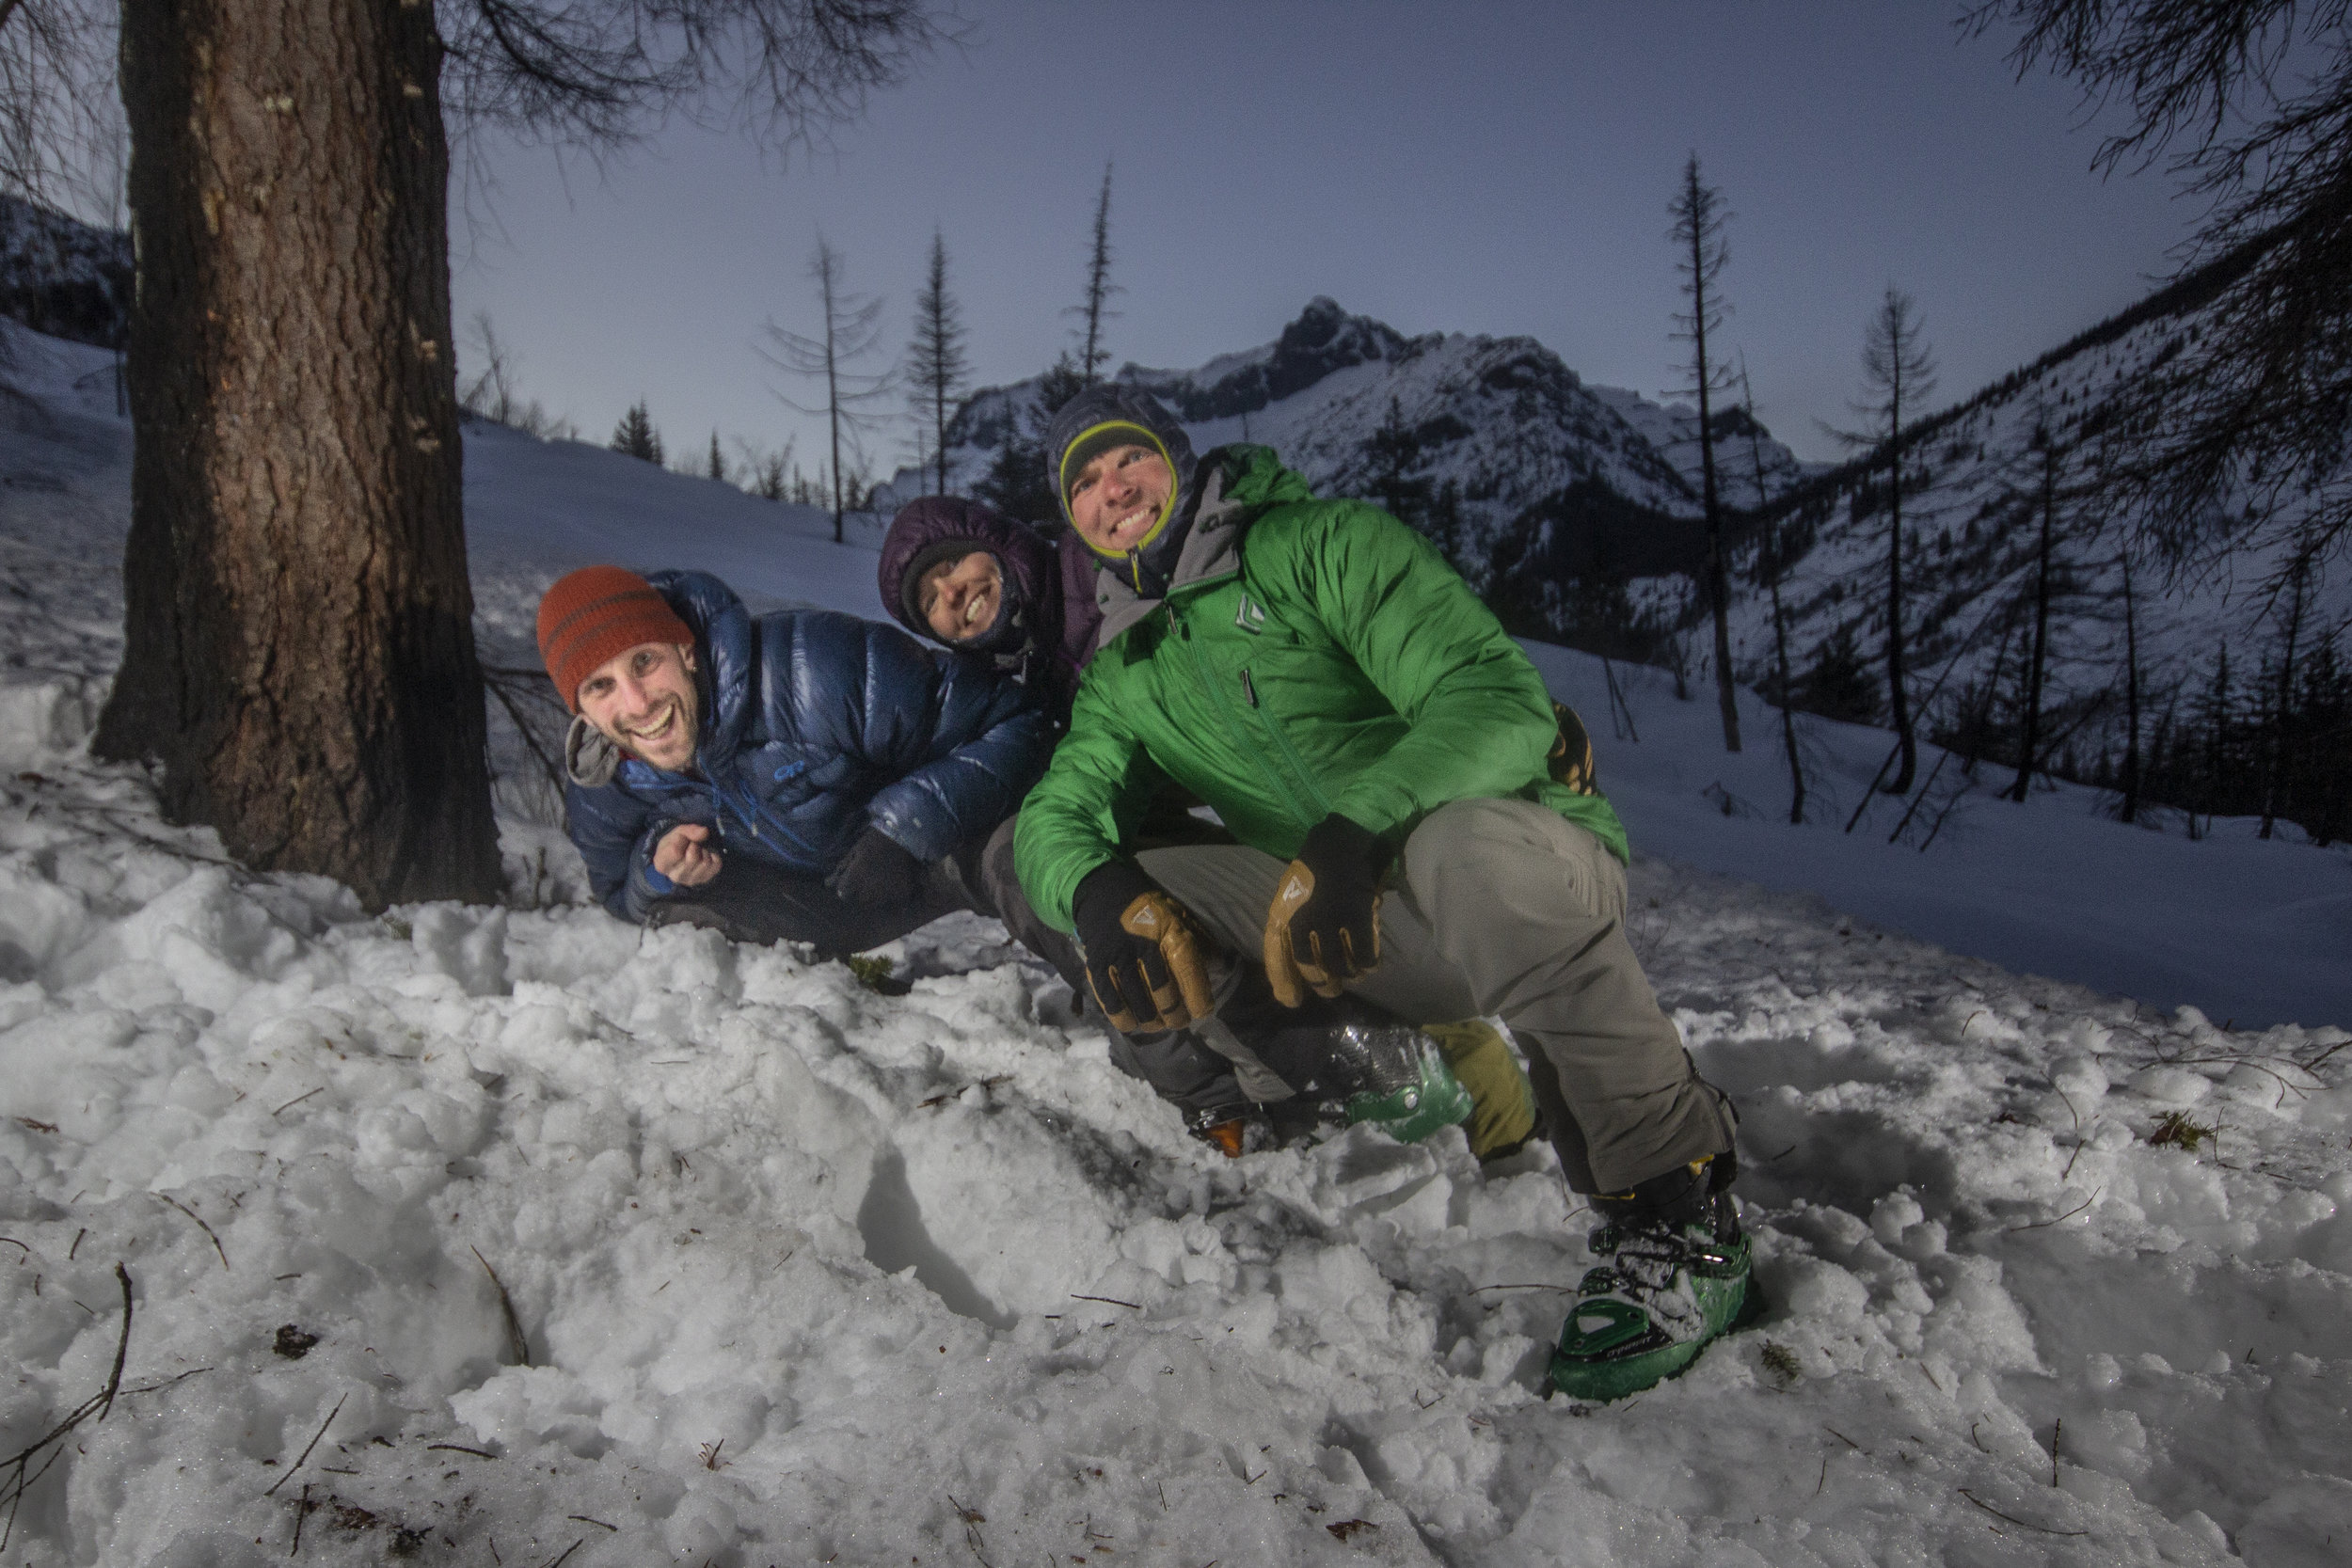 Steph Williams, Drew Lovell, and David Moskowitz captured on our camera trap right after we set it west of Lake Chelan in late January.